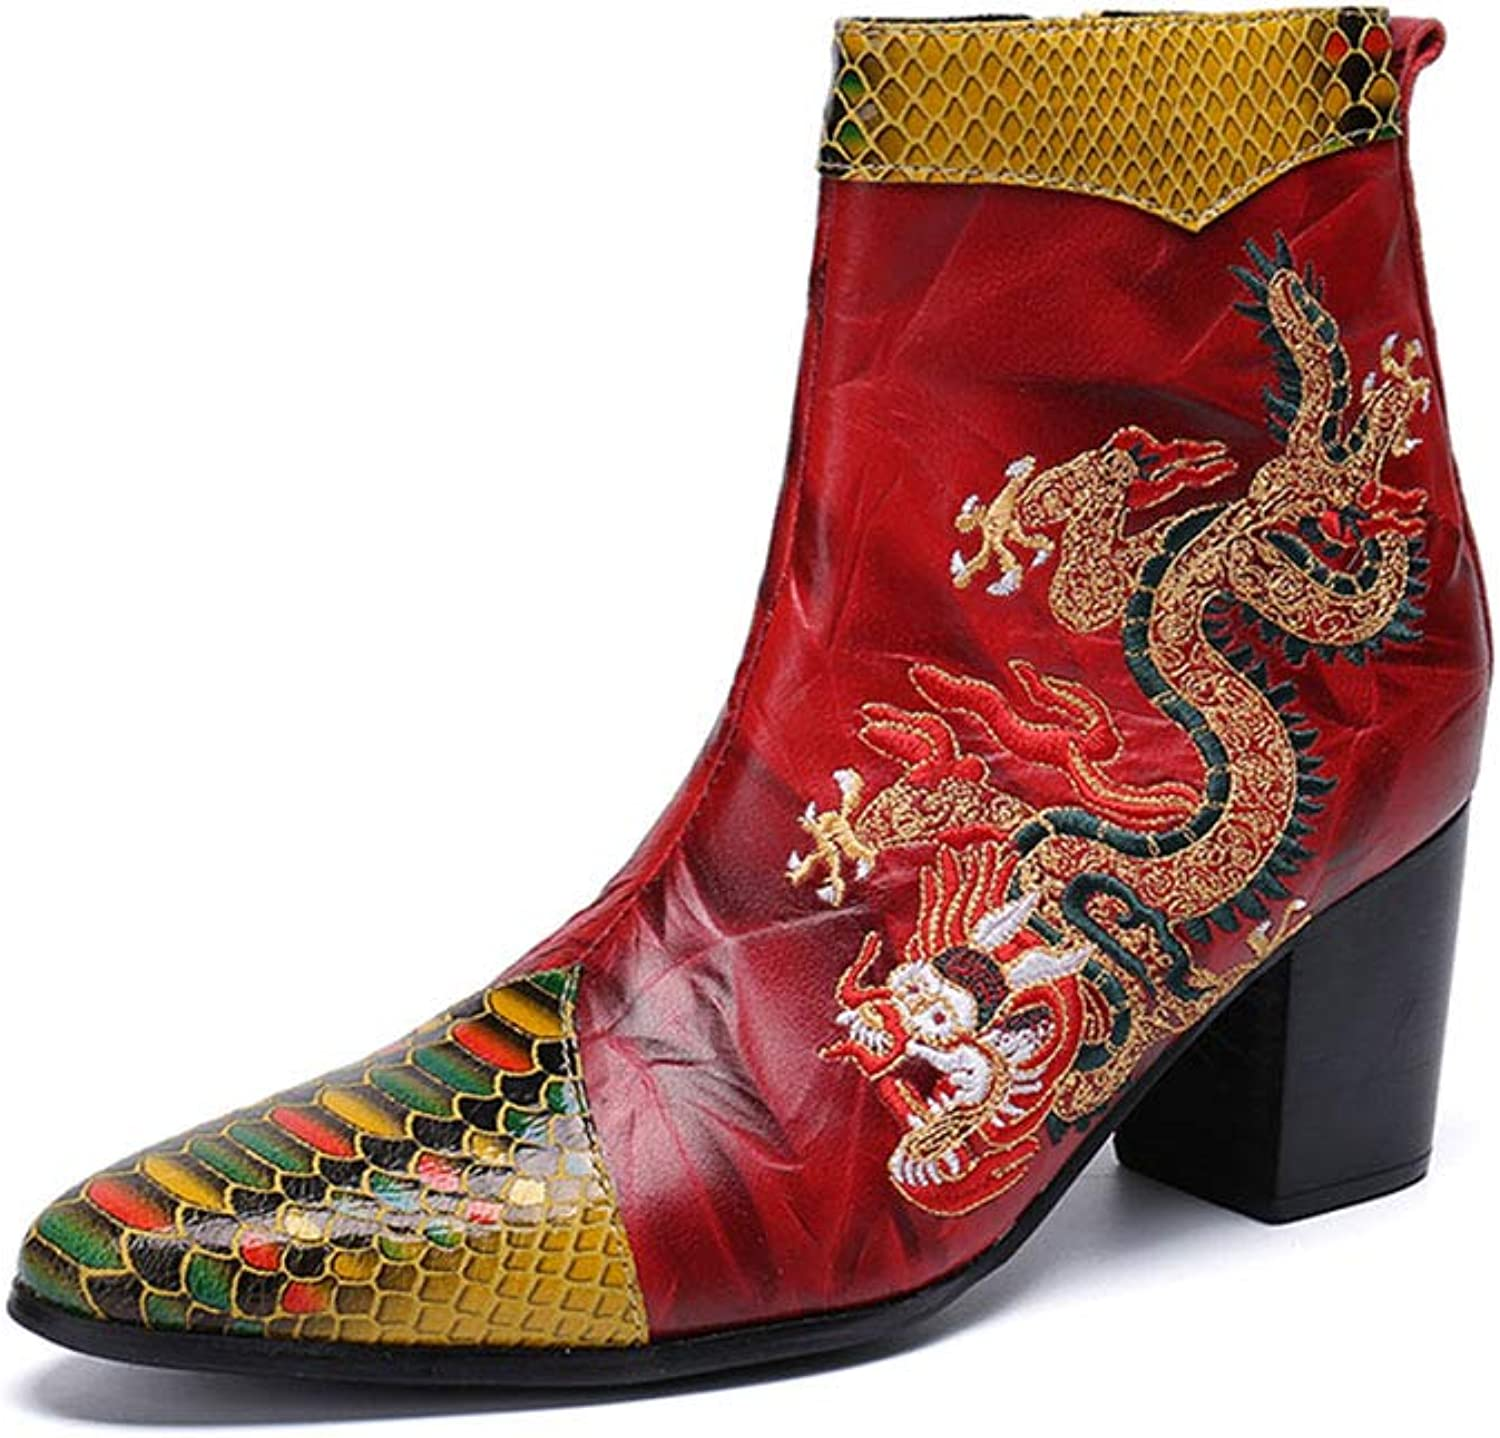 Men's Leather Boots Dragon Pattern Design Pointed Toe Shose Rock Singer Casual Classic Warm shoes for Autumn and Winter Cowboy Knight Short Boots for Nightclub,Wedding,Casual,Office,Party